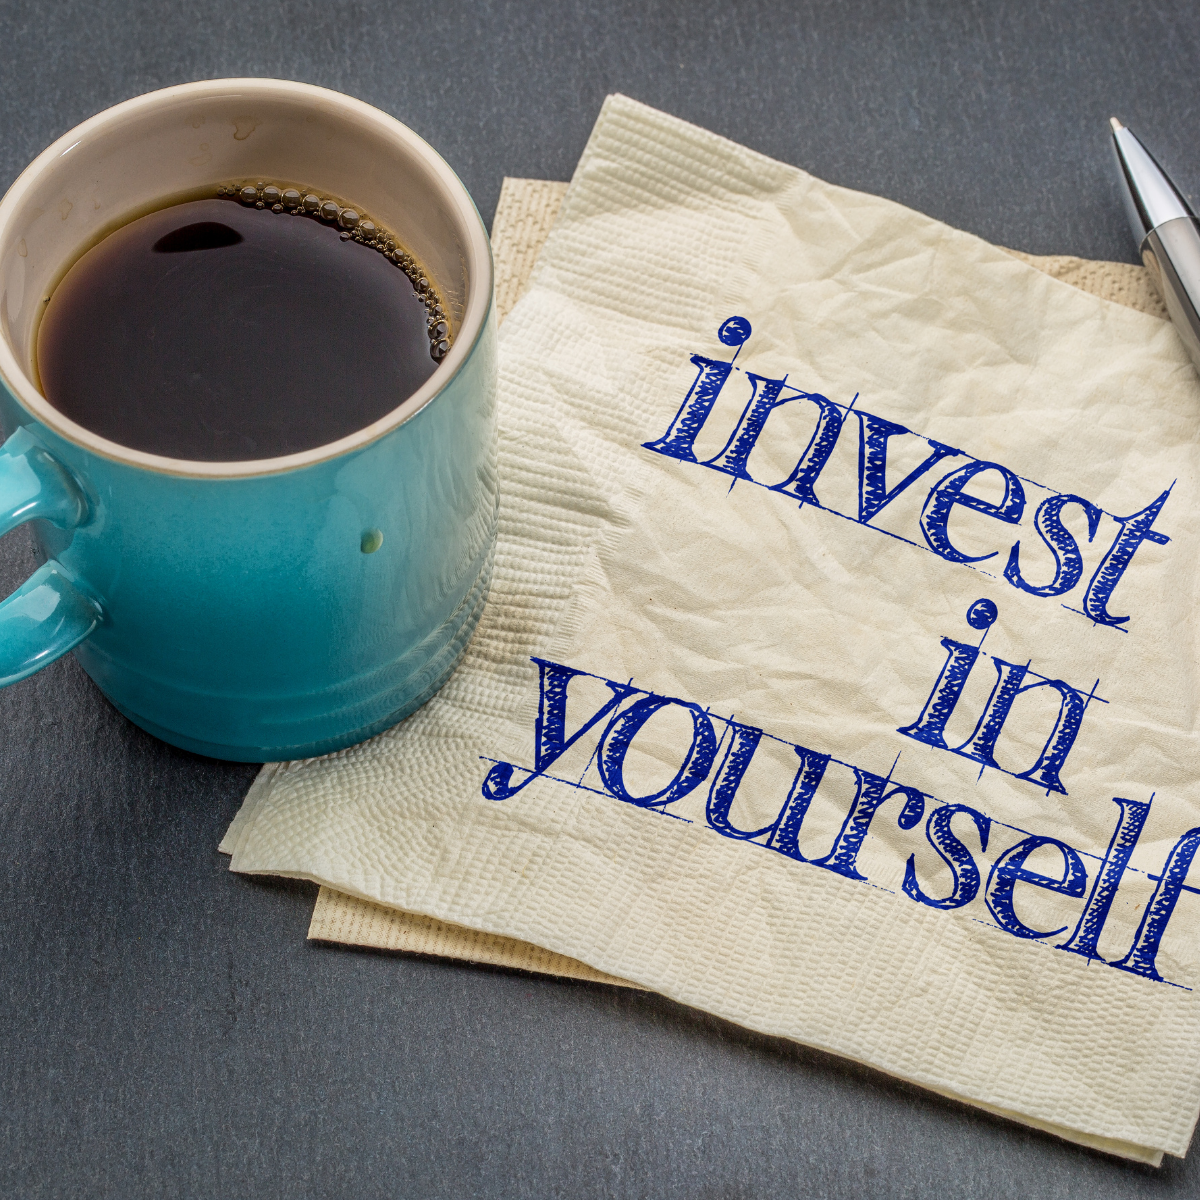 Time to invest in yourself